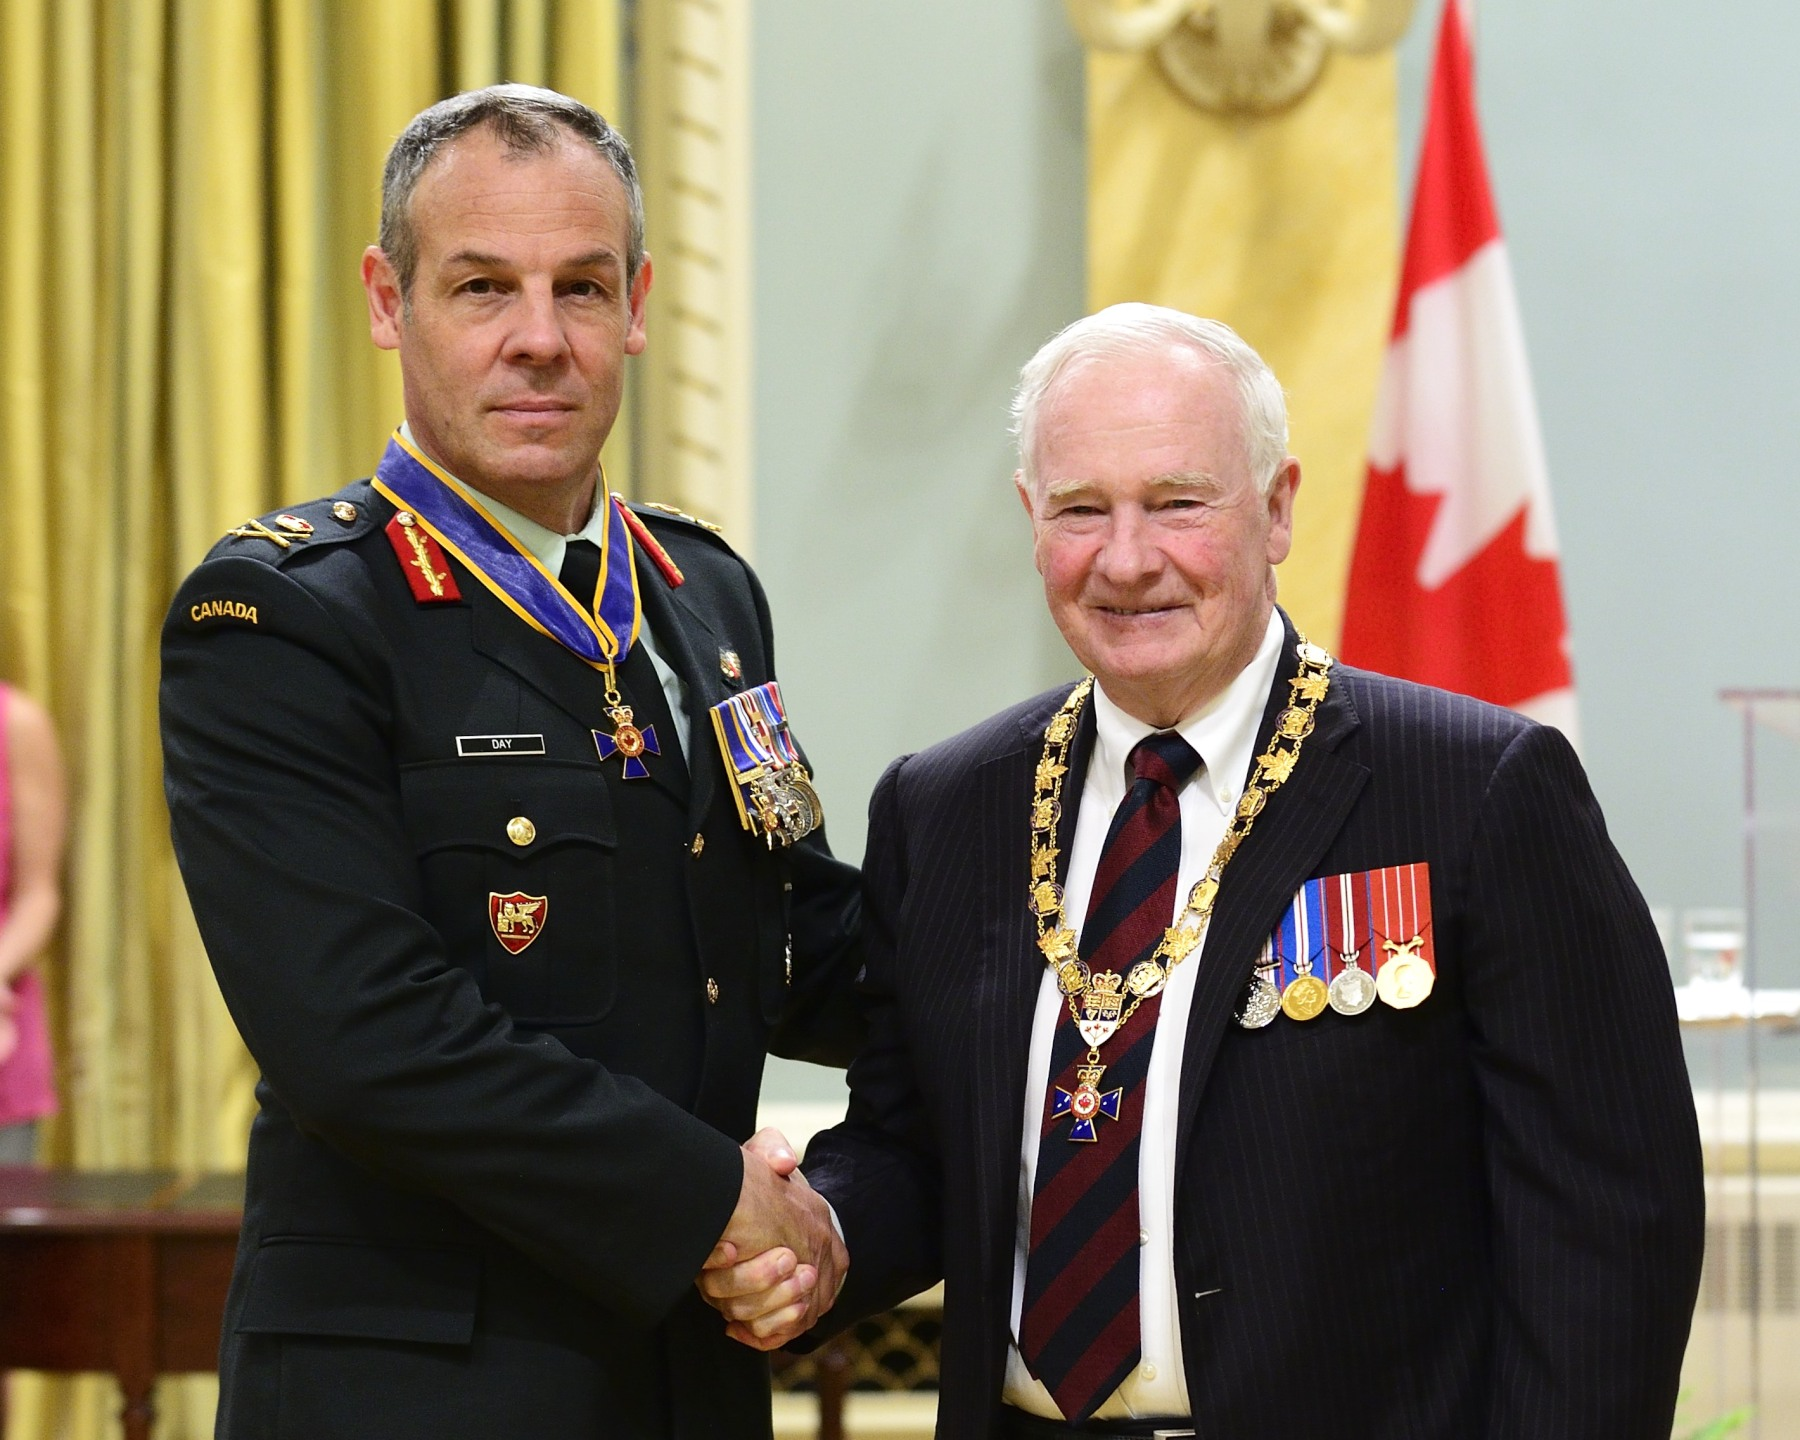 His Excellency presented the Order of Military Merit at the Commander level (C.M.M.) to Lieutenant-General Michael Day, C.M.M., M.S.C., C.D., Chief of Force Development, Ottawa, Ontario. This is a promotion within the Order.